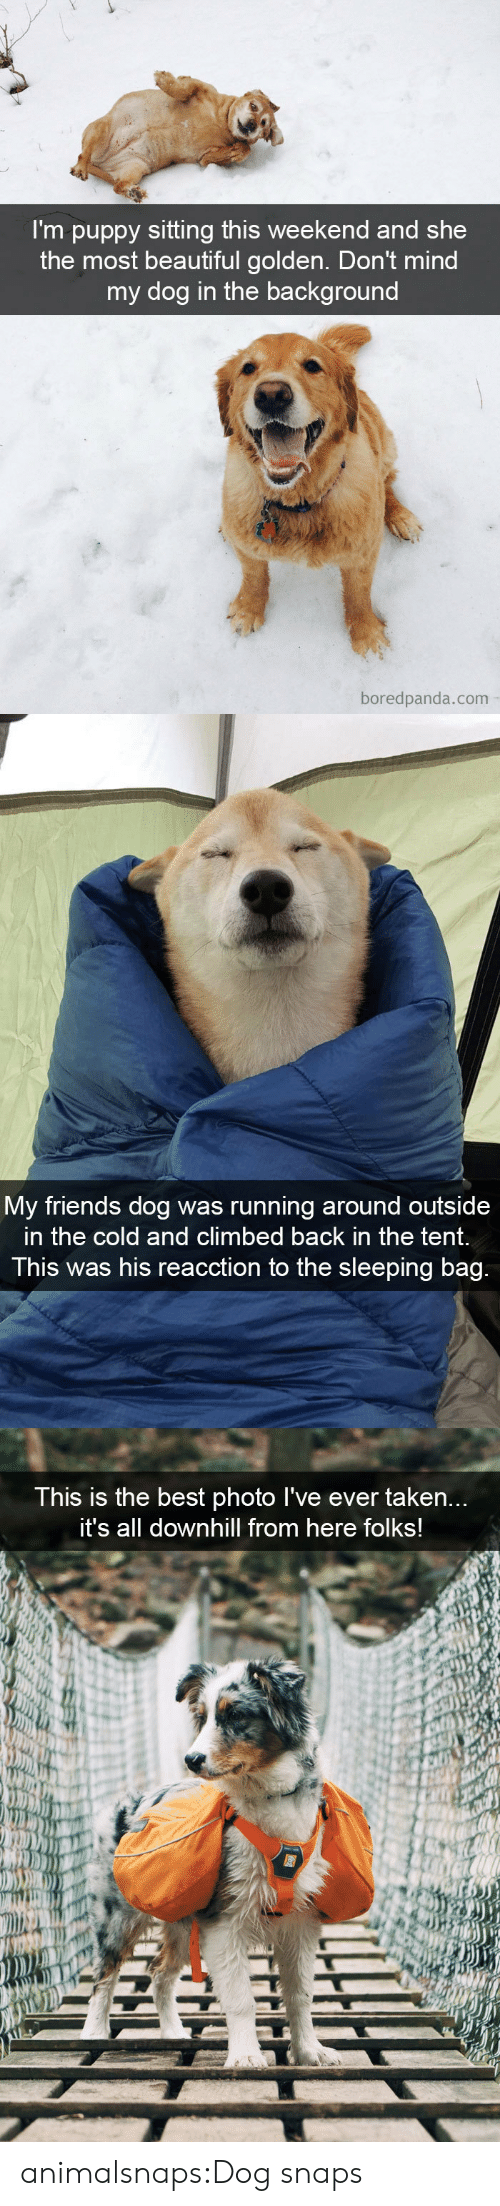 tent: I'm puppy sitting this weekend and she  the most beautiful golden. Don't mind  my dog in the background  boredpanda.com   My friends dog was running around outside  in the cold and climbed back in the tent.  This was his reacction to the sleeping bag.   This is the best photo I've ever taken...  it's all downhill from here follks! animalsnaps:Dog snaps